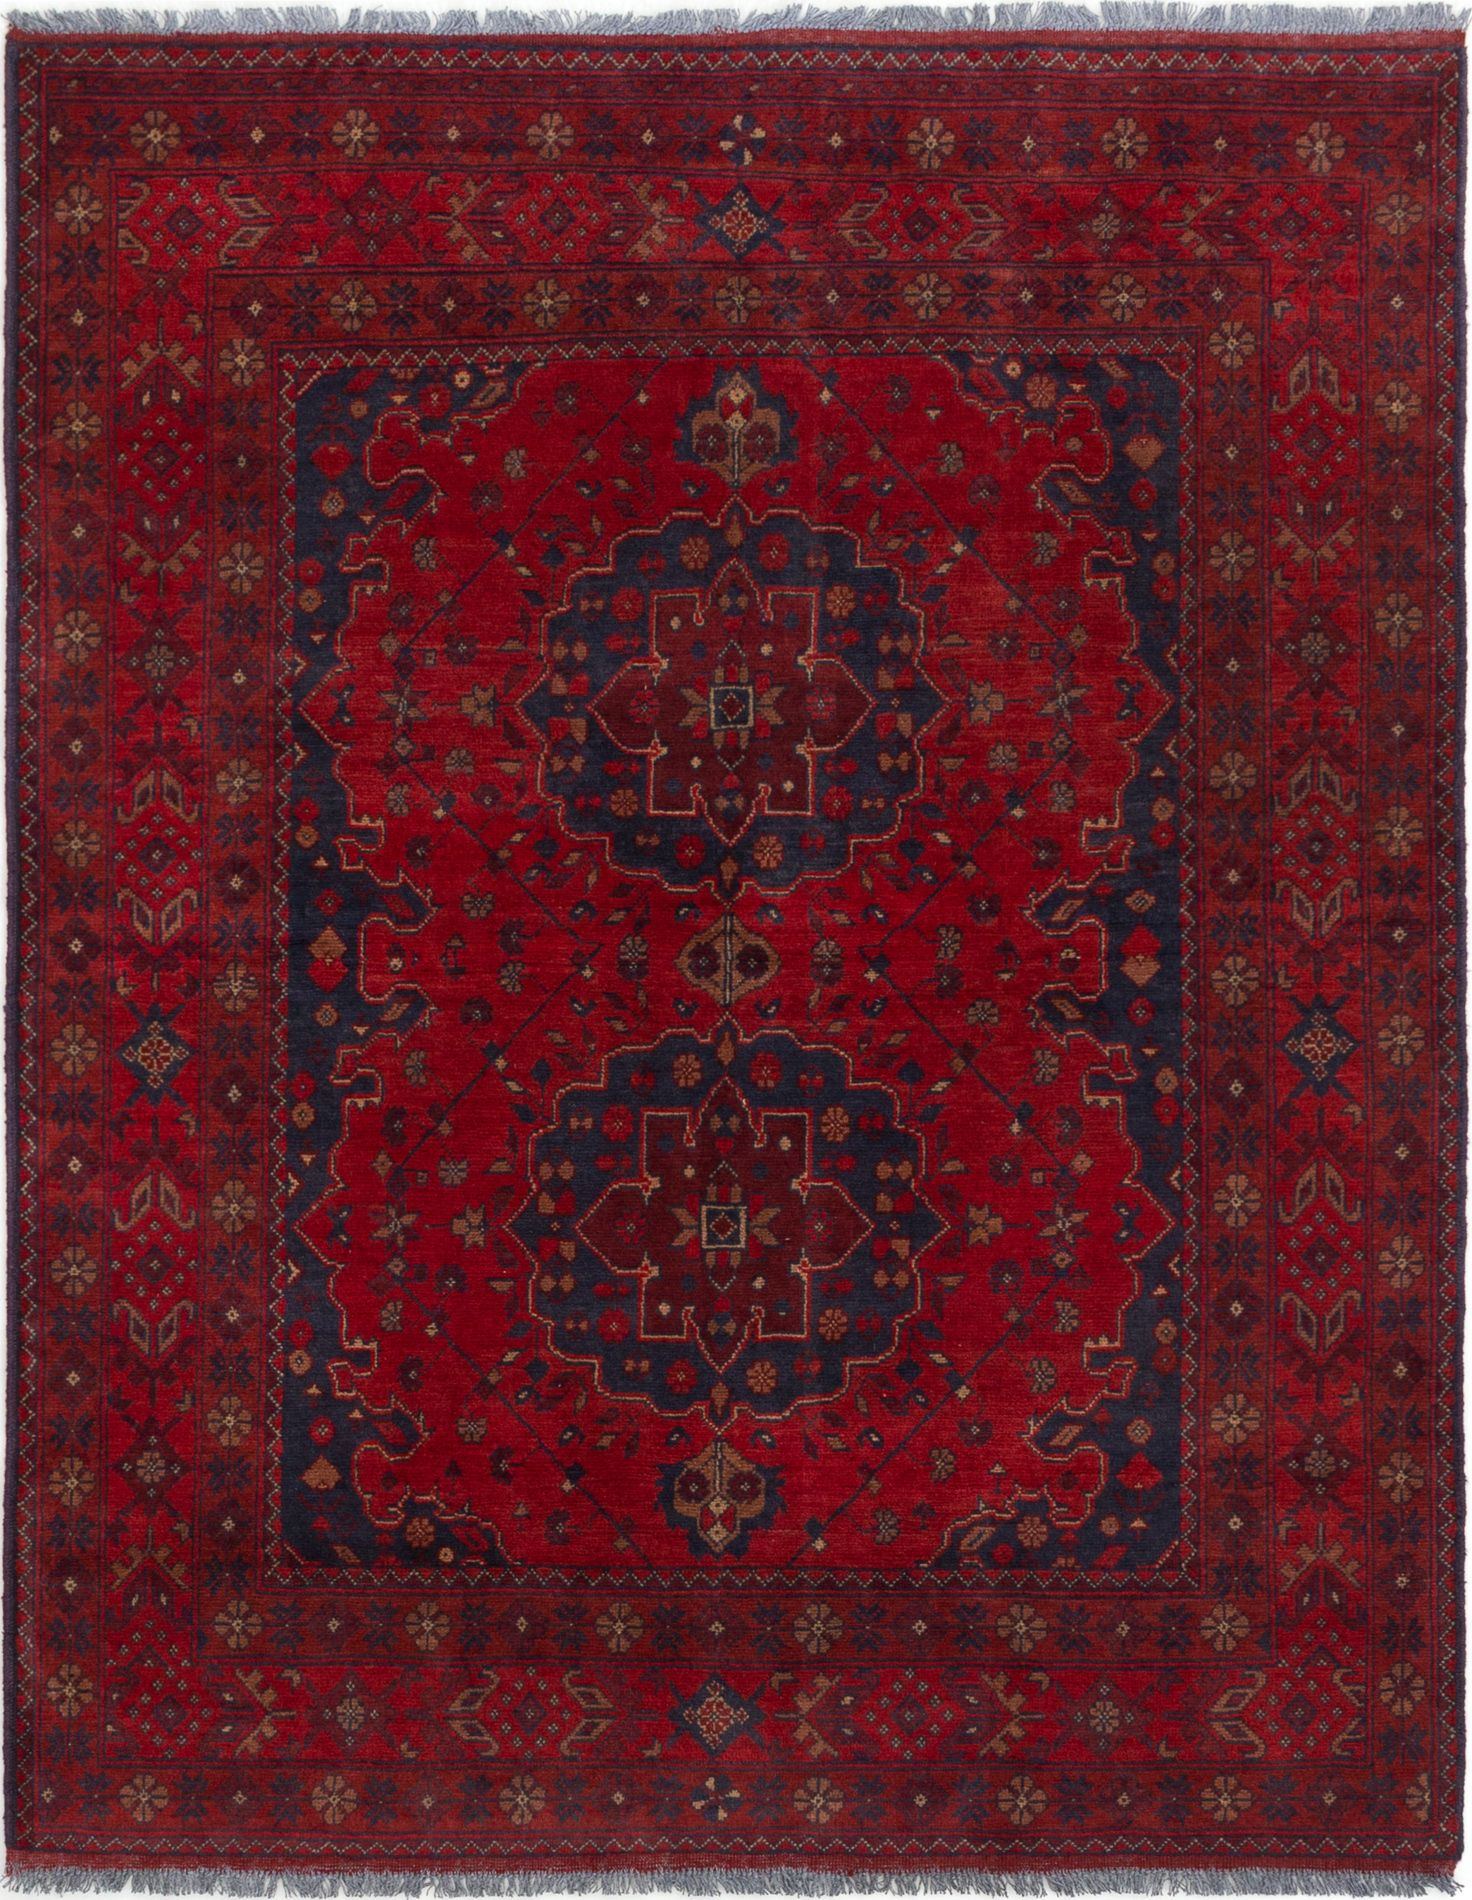 """Hand-knotted Finest Khal Mohammadi Red Wool Rug 4'11"""" x 6'4""""  Size: 4'11"""" x 6'4"""""""